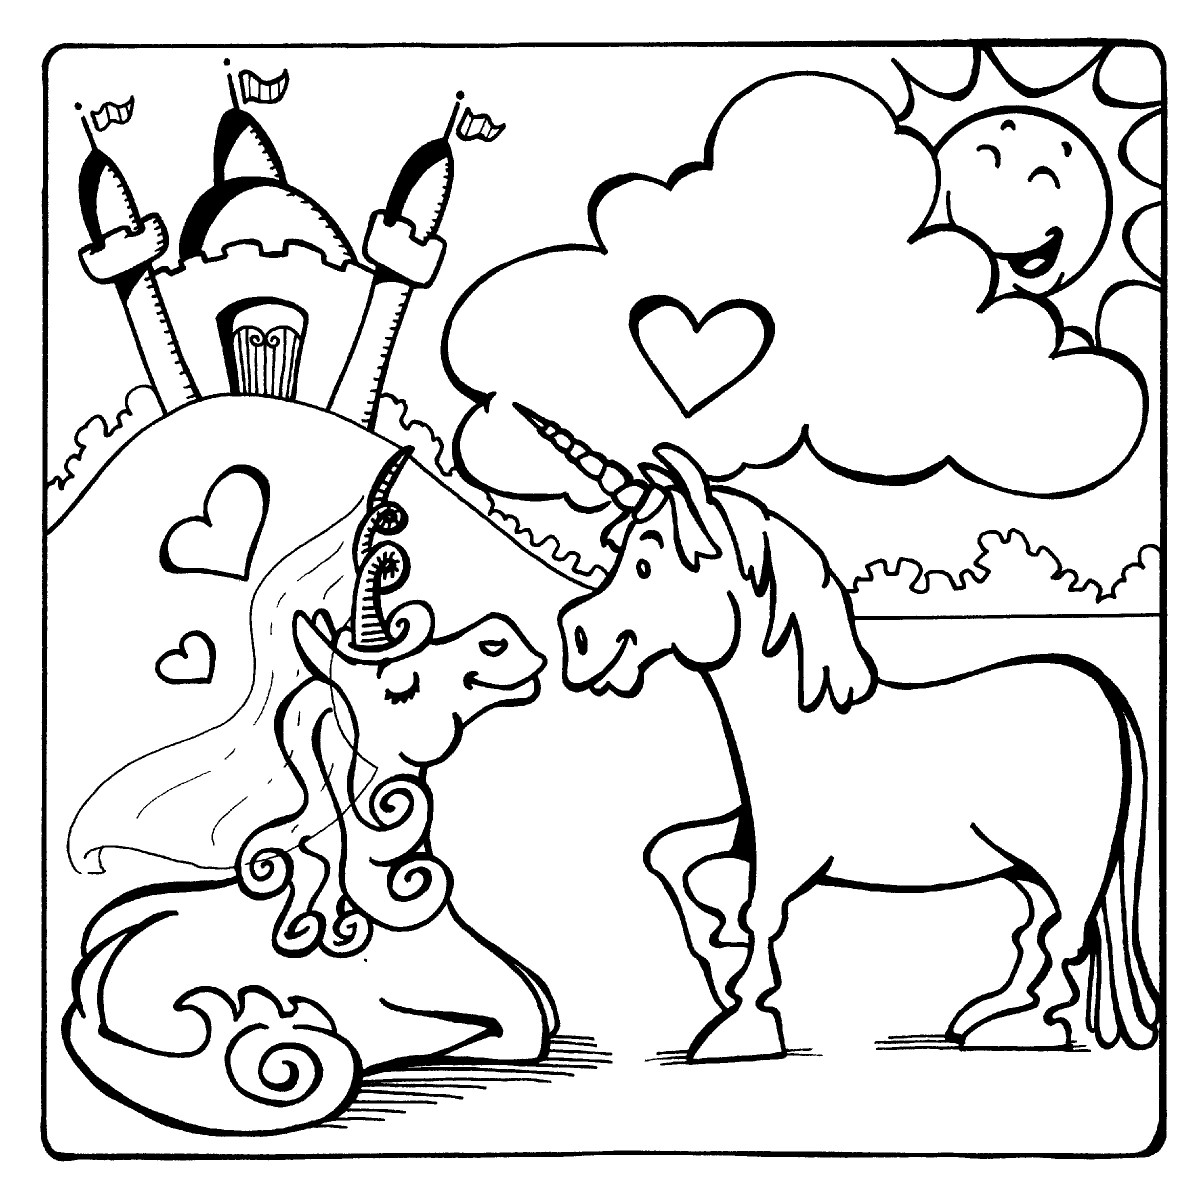 What could be more magical than a unicorn prince and princess?